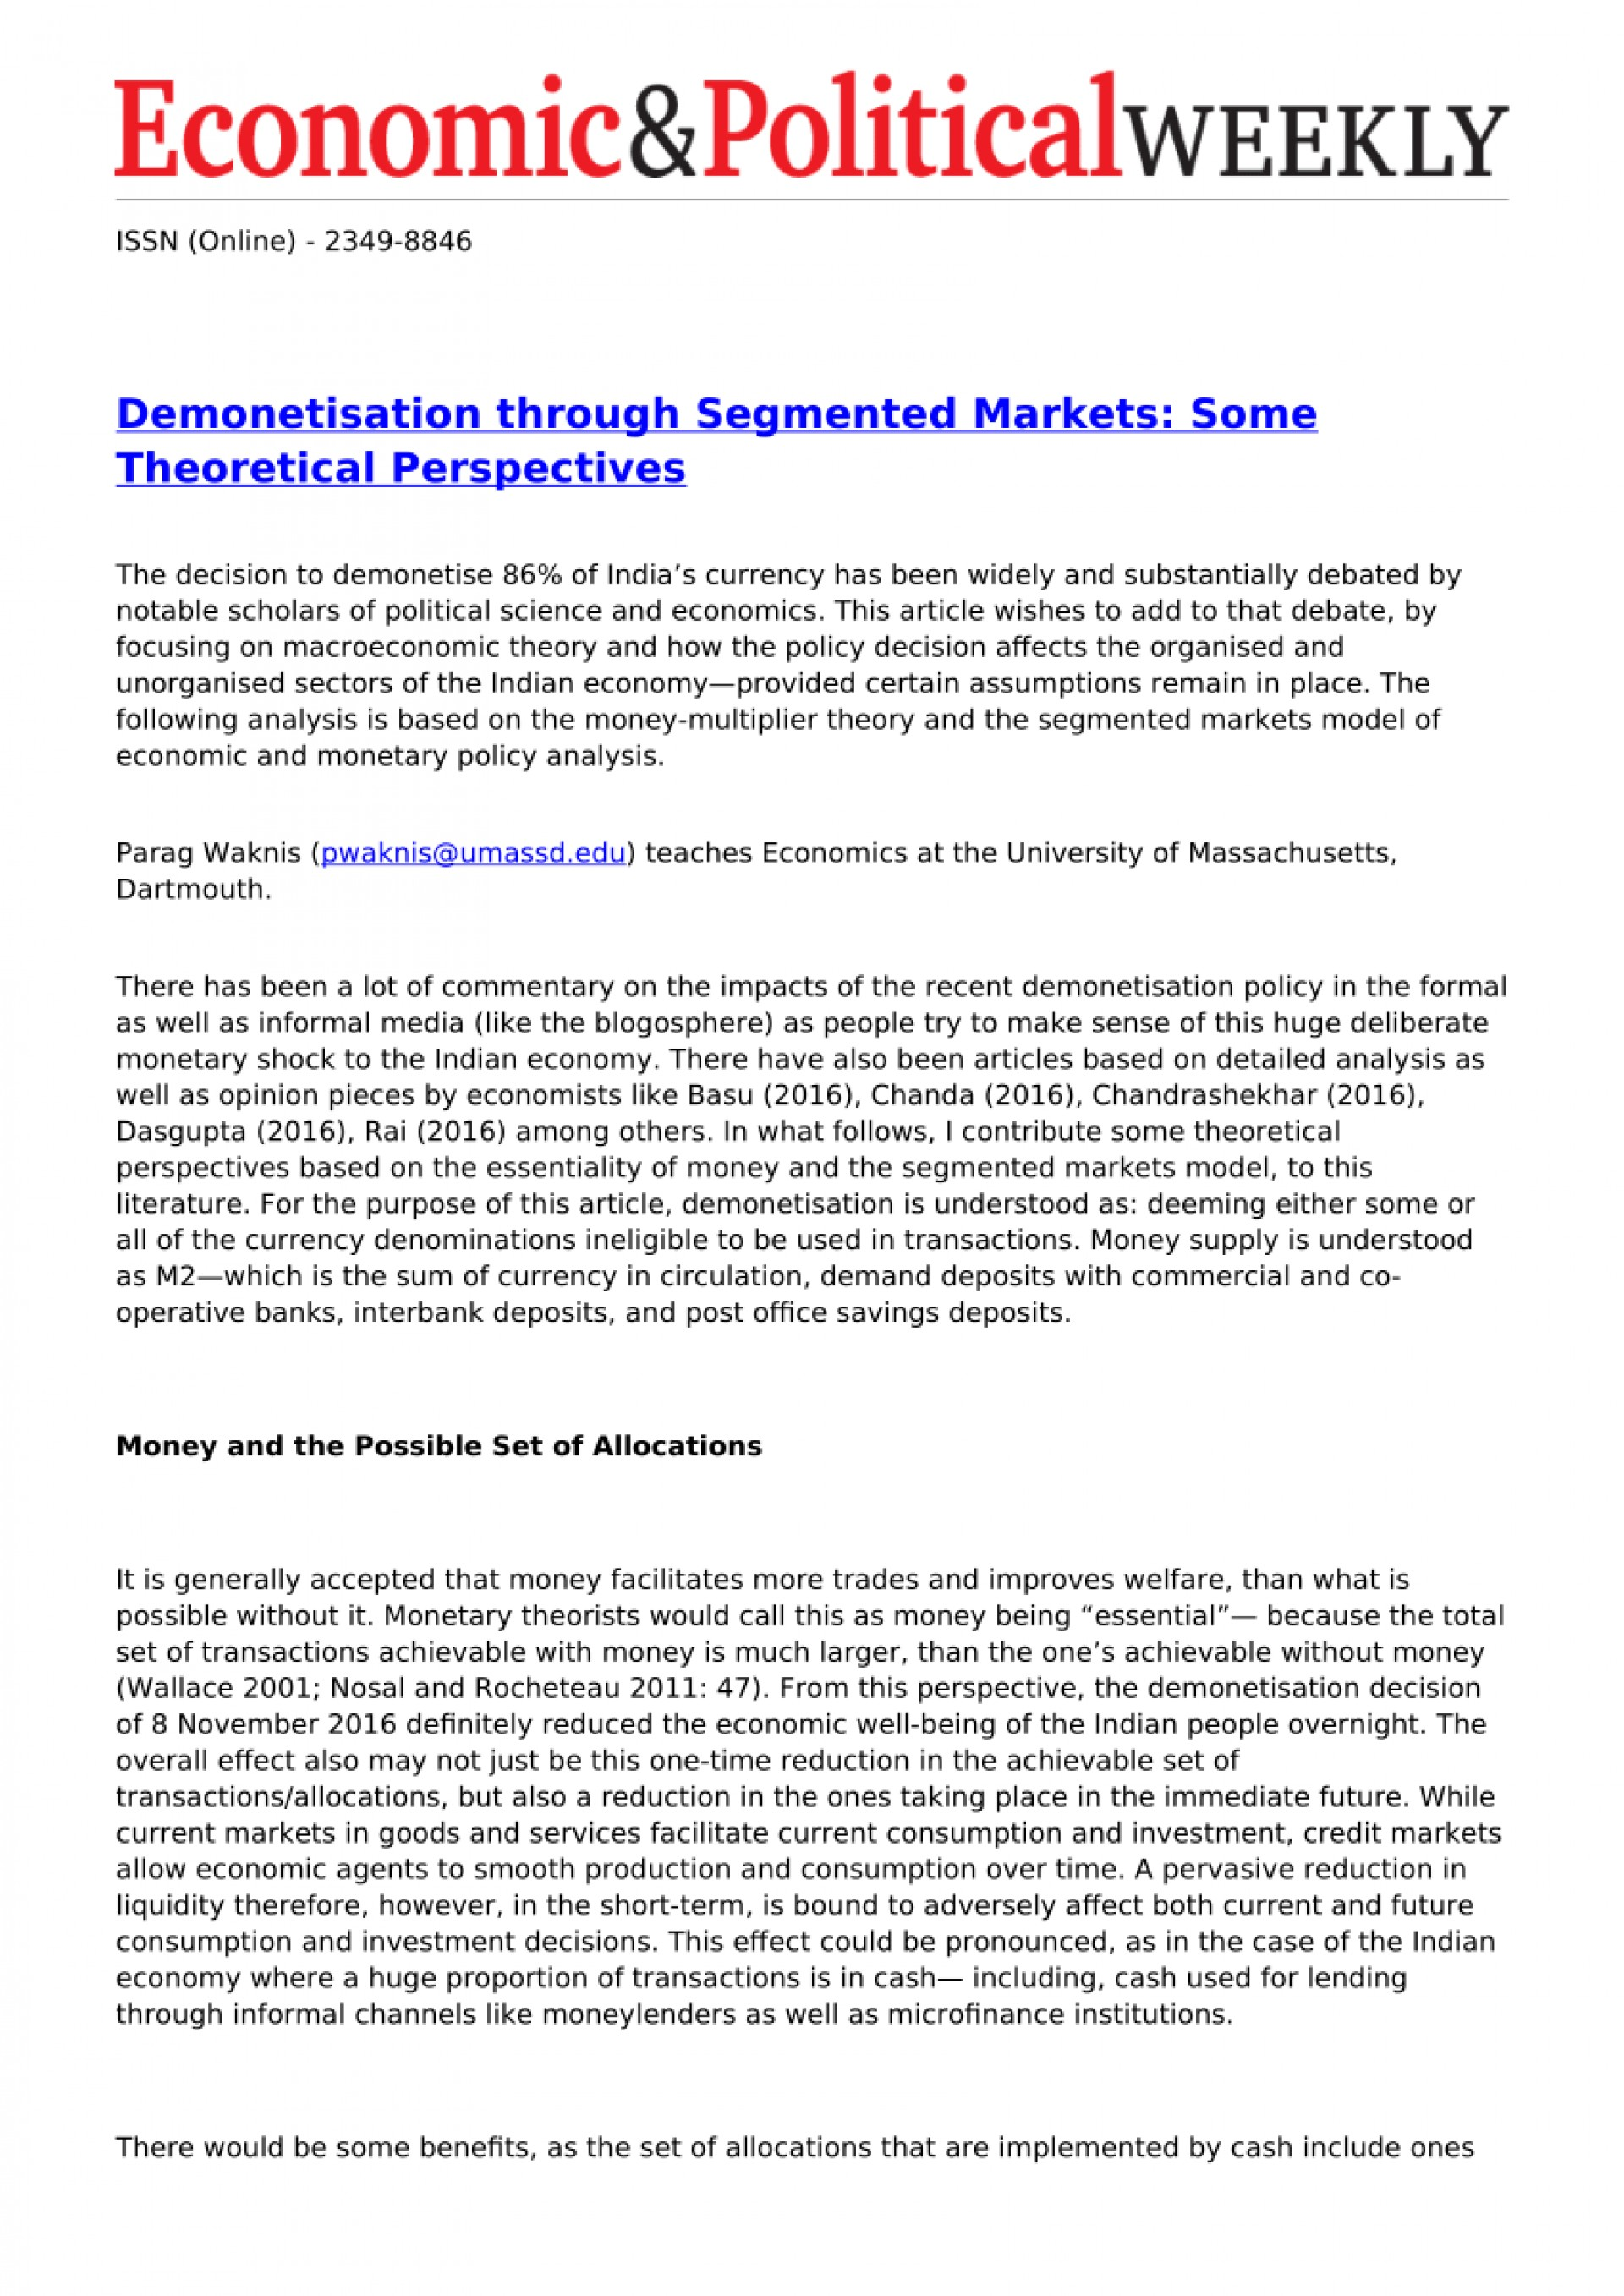 003 Largepreview Research Paper Demonetization And Its Impact On Indian Frightening Economy 1920